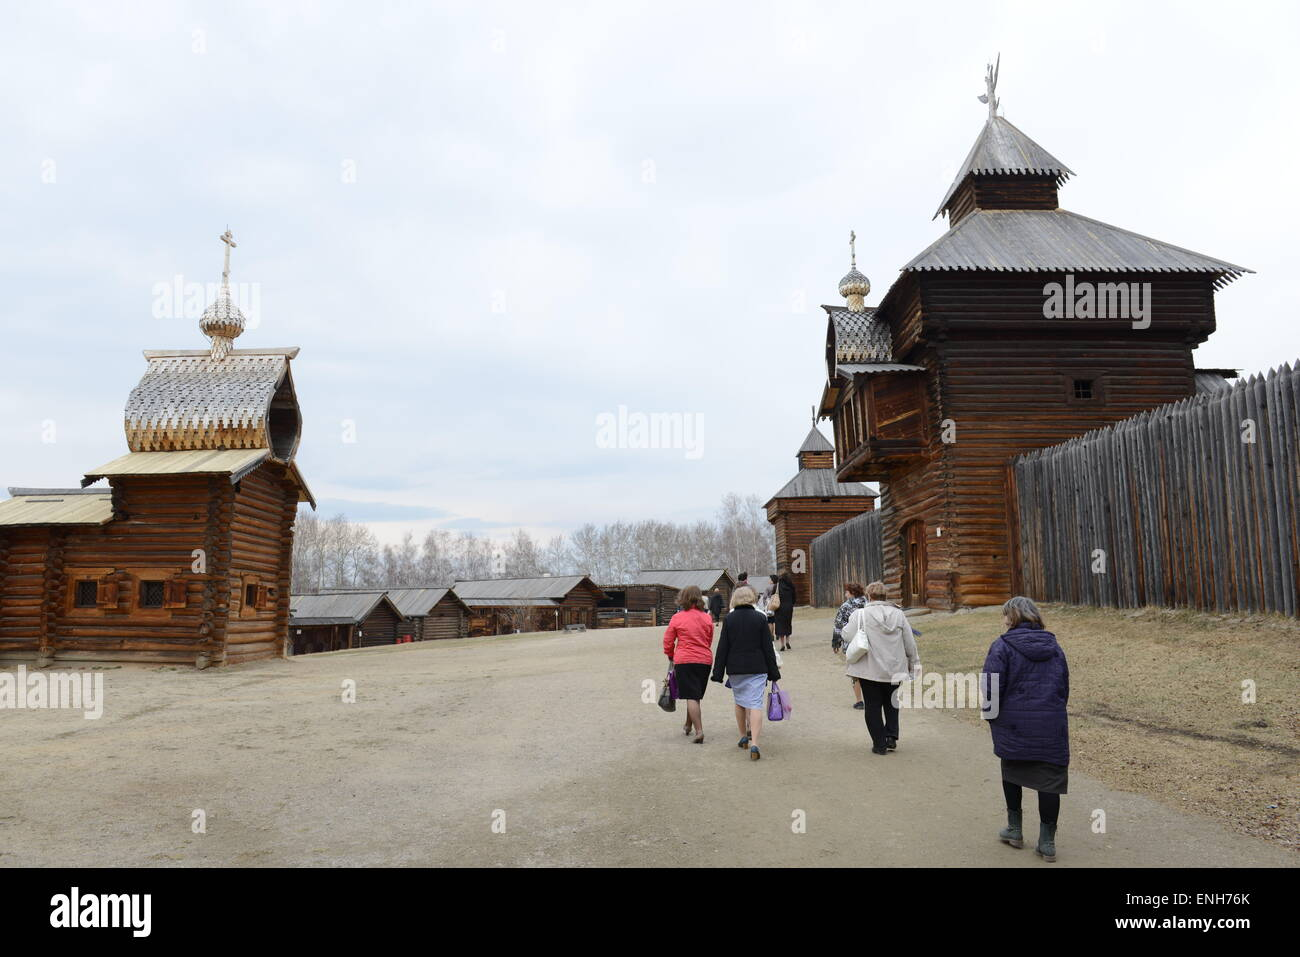 Old traditional Siberian wooden houses in the Taltsy Open-Air Museum near Irkutsk. - Stock Image